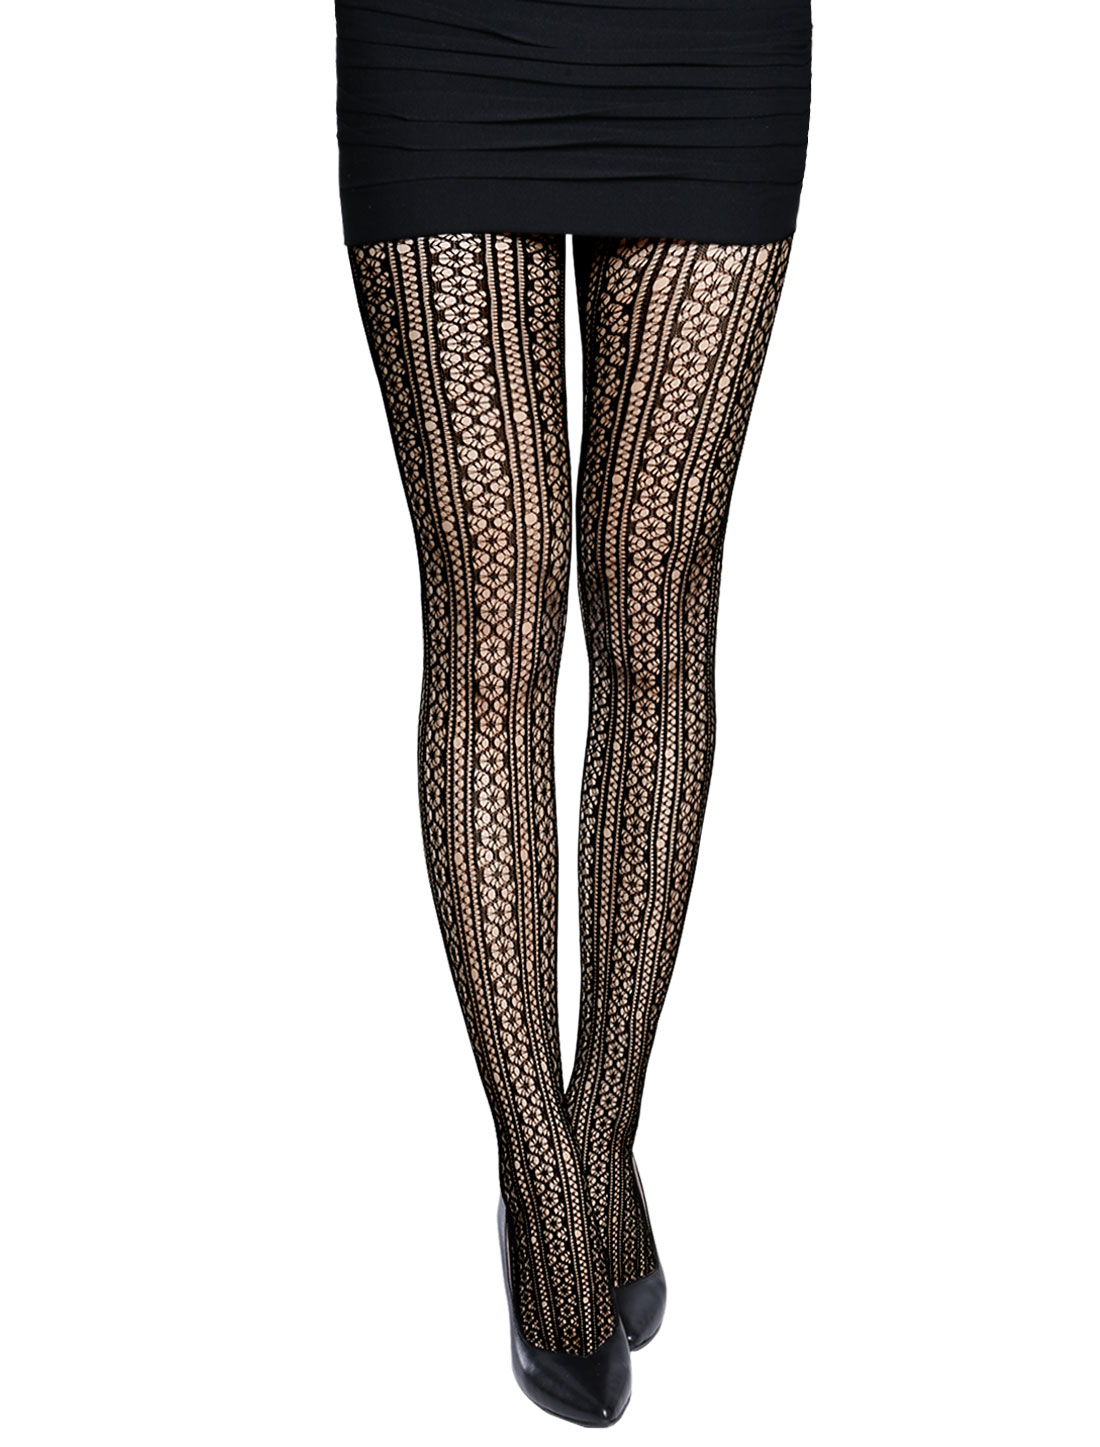 Women Stretchy Geometric Pattern Seamless Fishnet Pantyhose Black XS